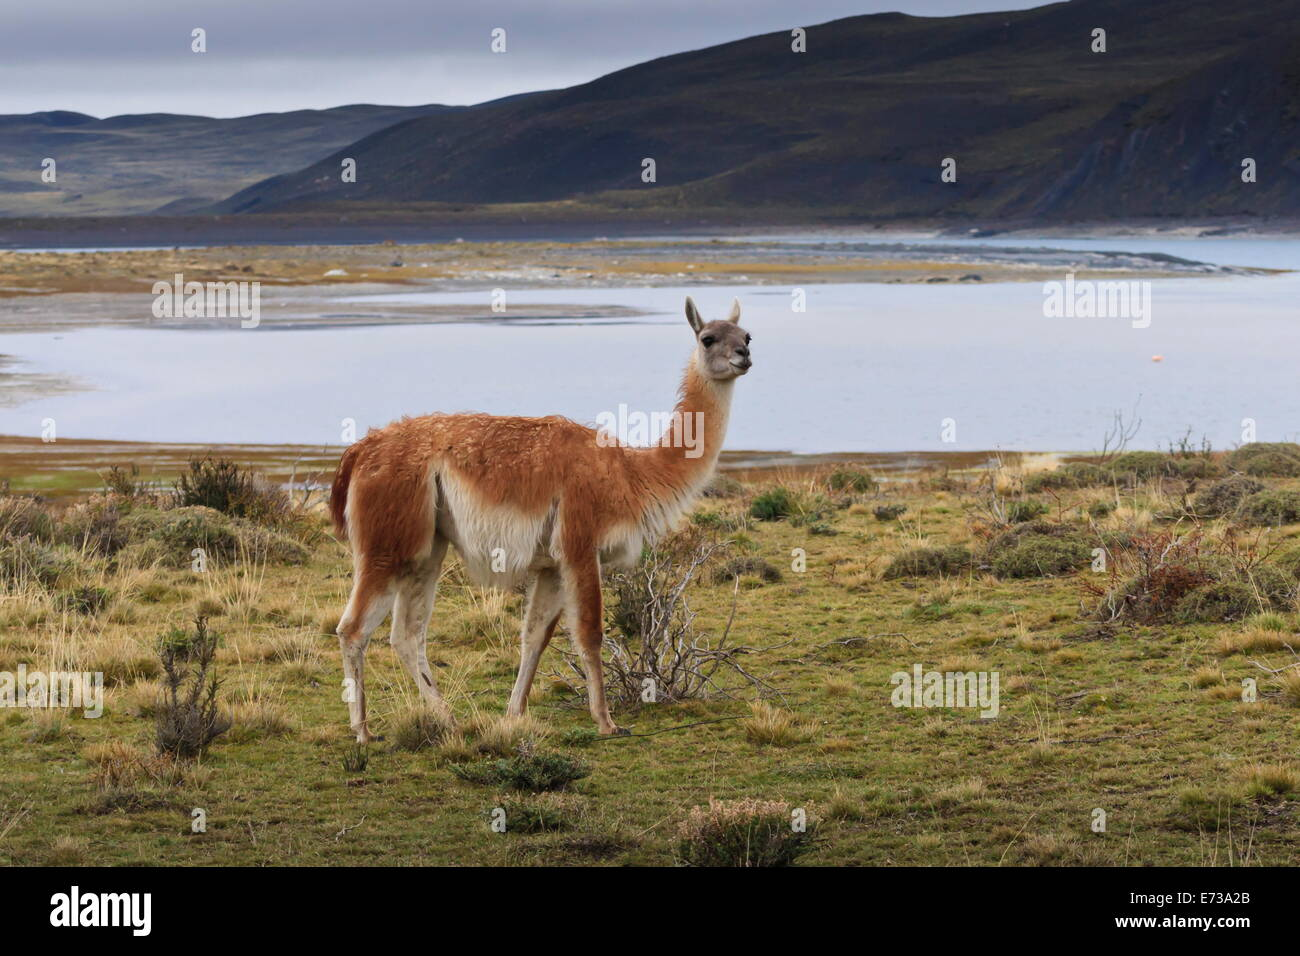 Guanaco (Lama guanicoe) on lake foreshore,Torres del Paine National Park, Patagonia, Chile, South America - Stock Image